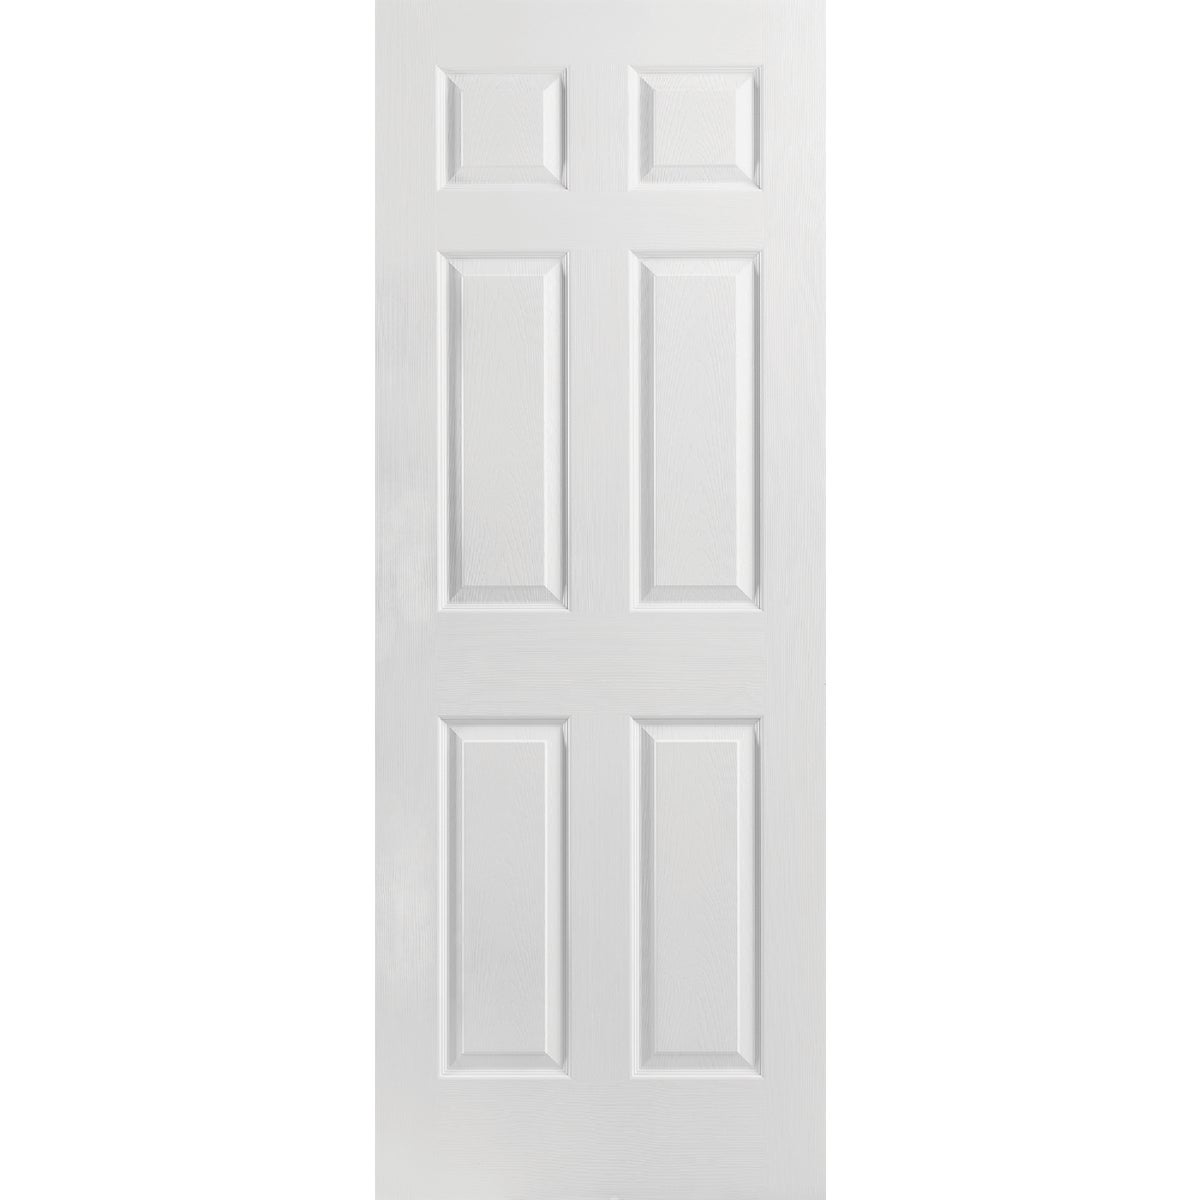 2/0 1-3/8 6PN TX HC DOOR -  by Masonite